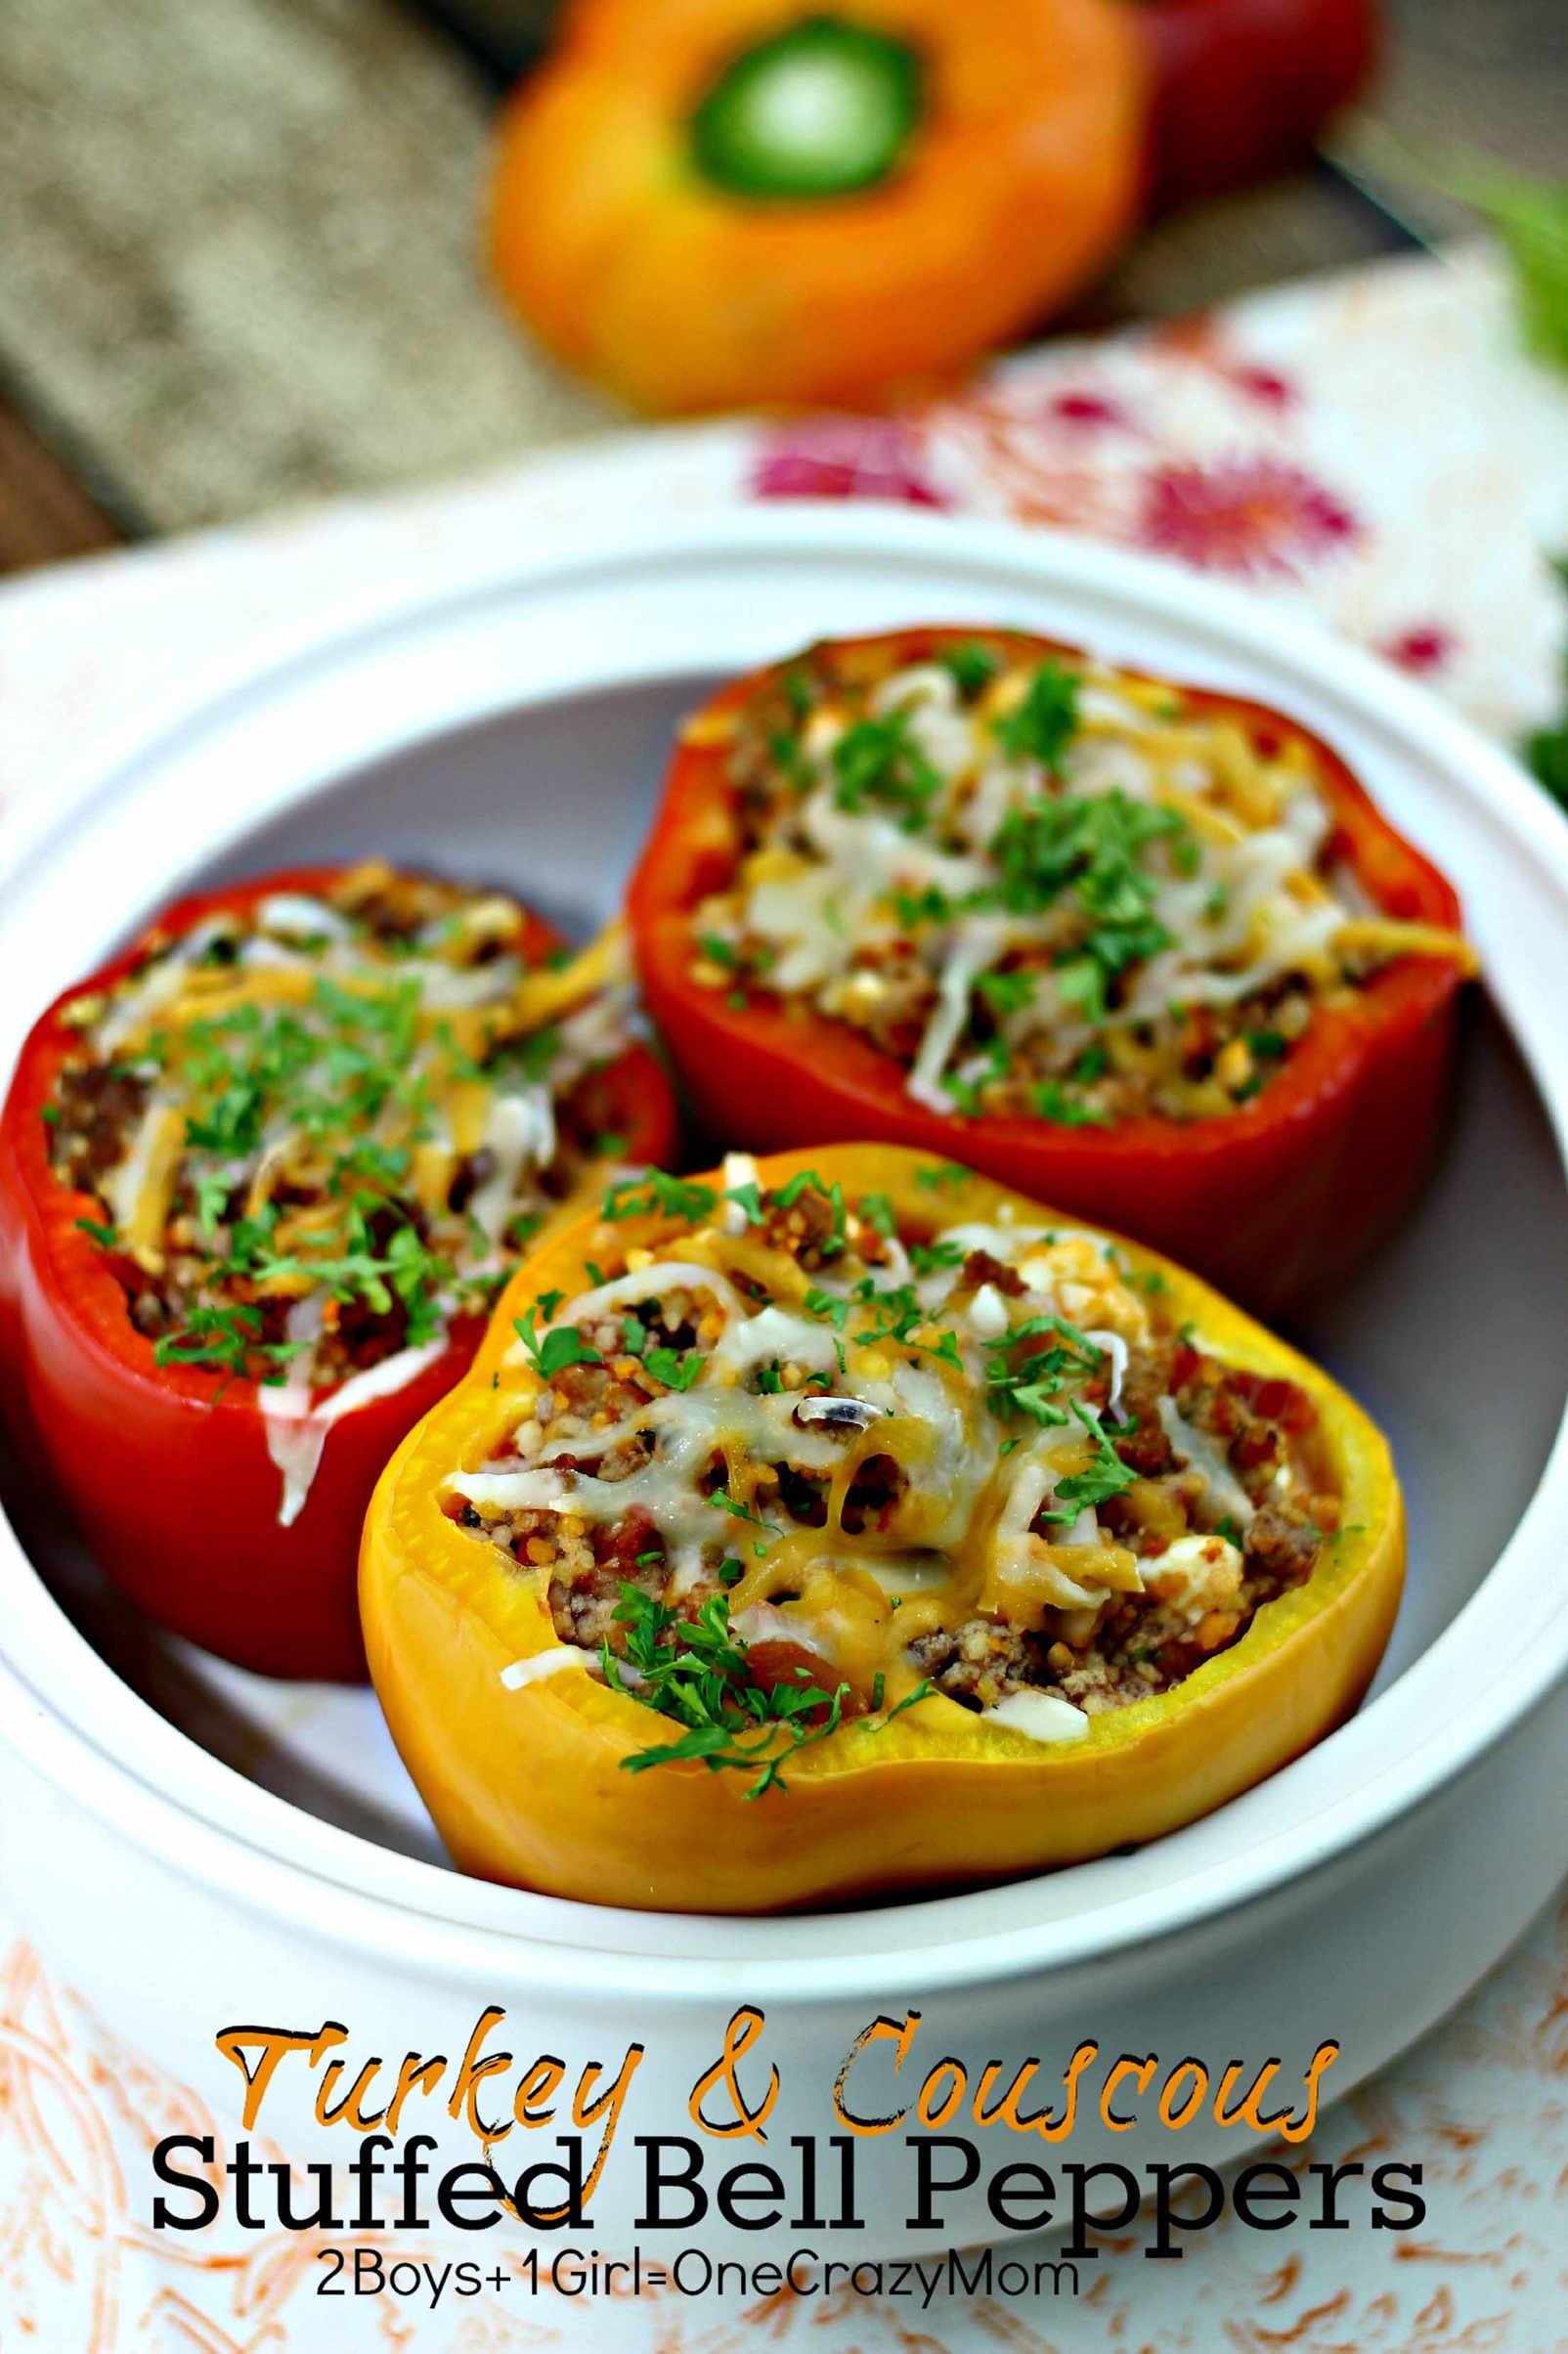 Stuffed Pepper with Turkey & Cuscus Filling #Recipe Fresh From Florida 2